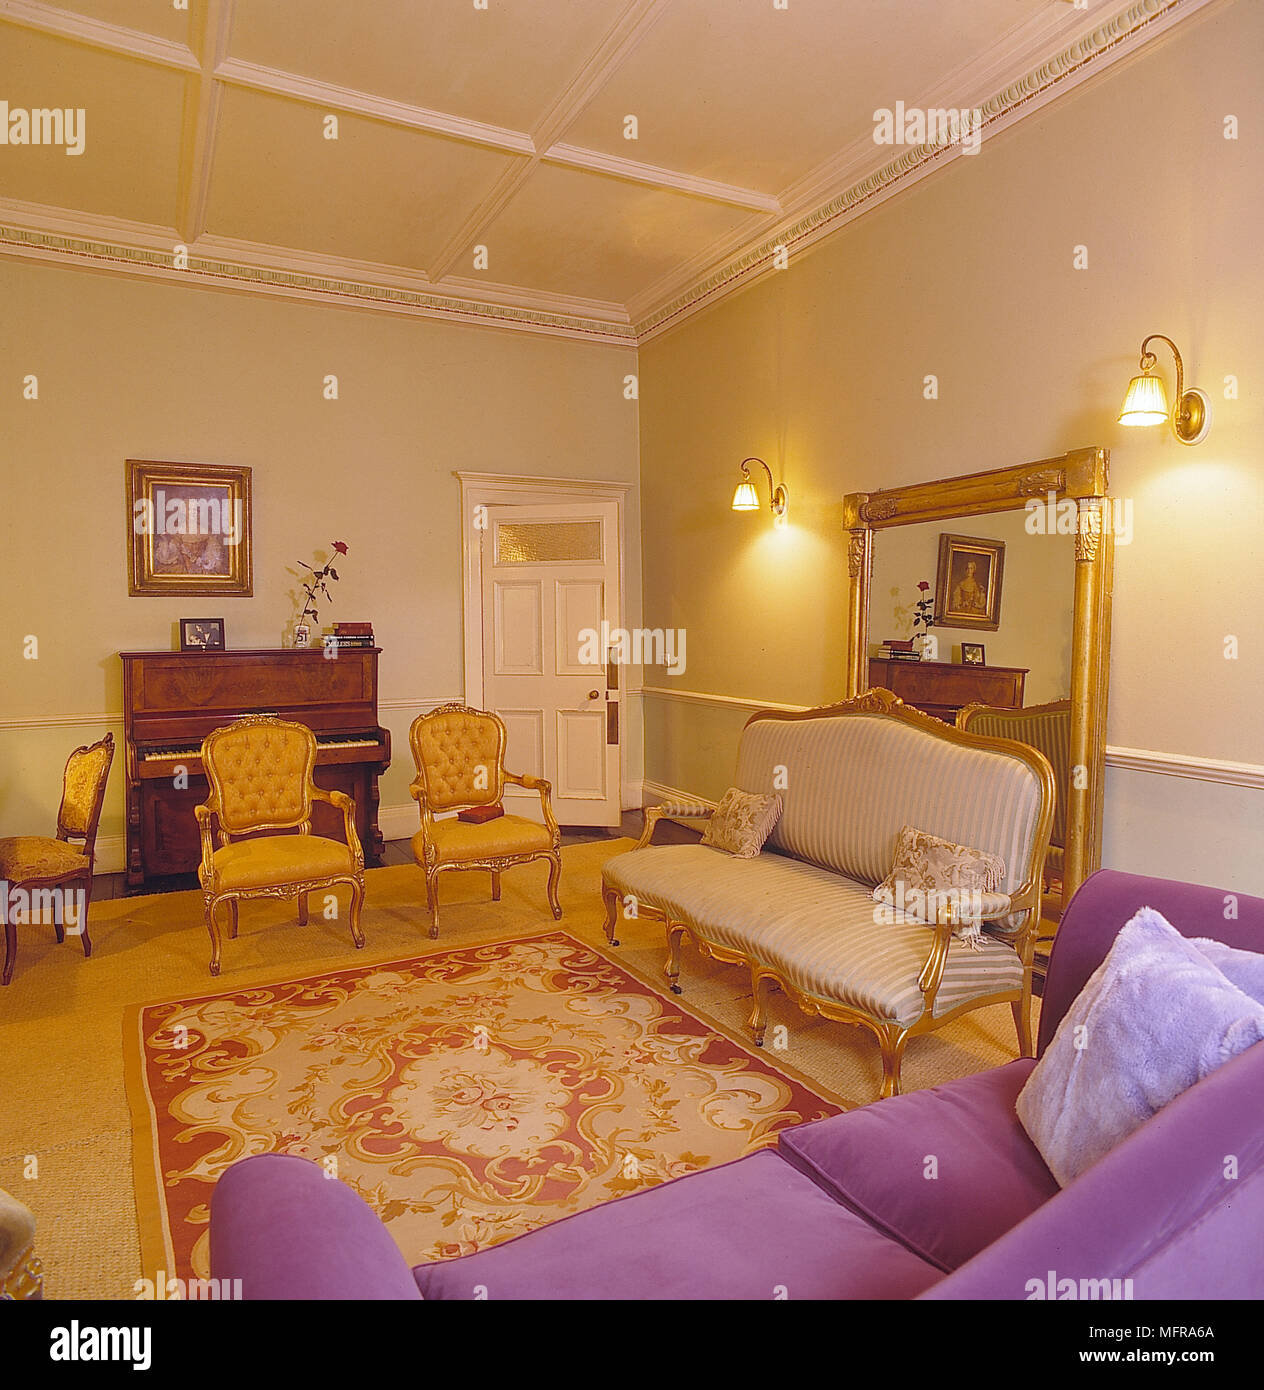 Sitting room yellow walls red rug gold carpet purple couch gold chairs piano large gold mirror ineteriors rooms antiques painting wall lights plasterw